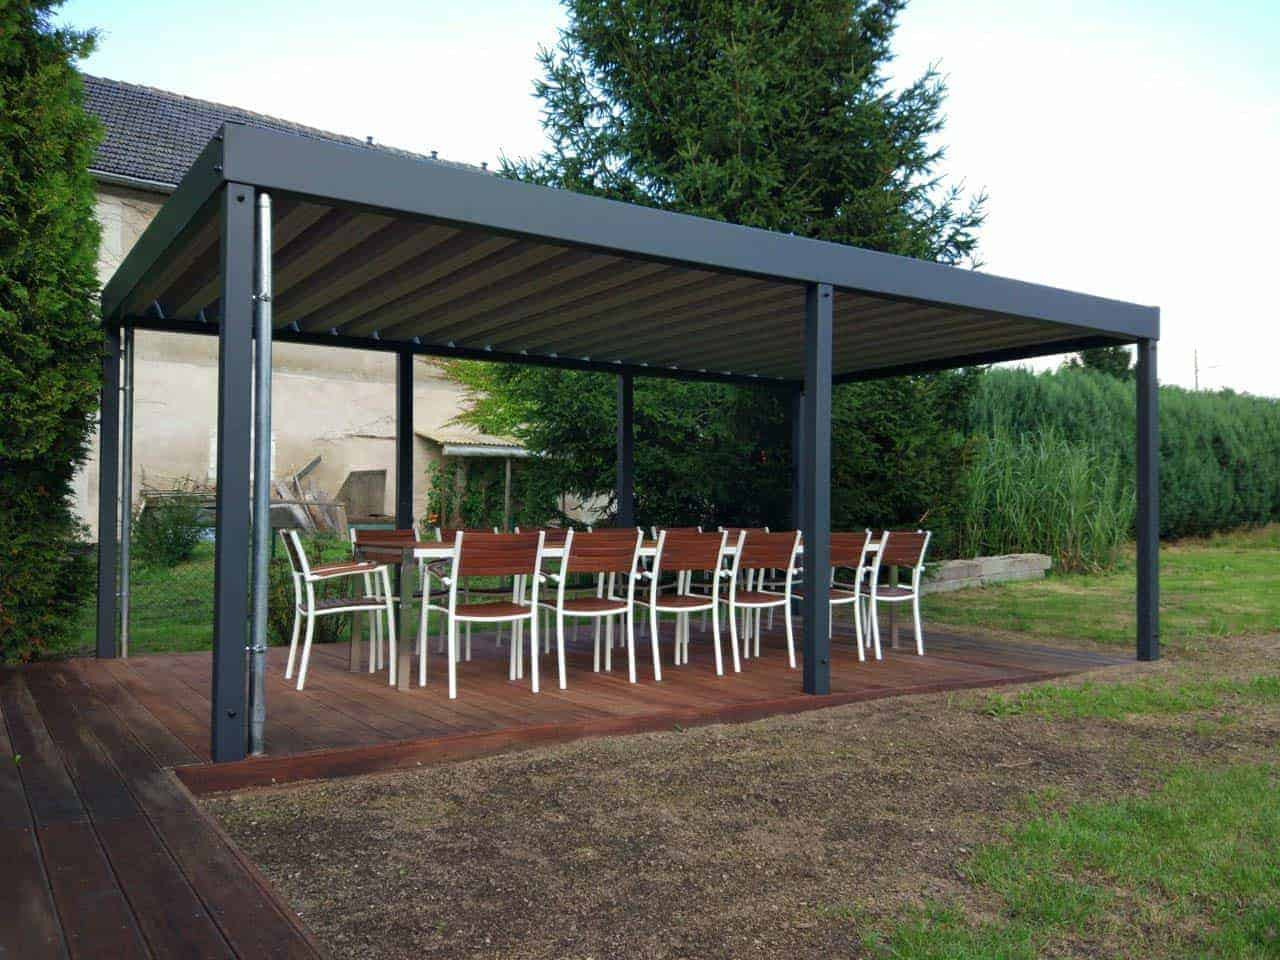 pavillon holz metall pavillon 001 der metall carport mit abstellraum made for you. Black Bedroom Furniture Sets. Home Design Ideas